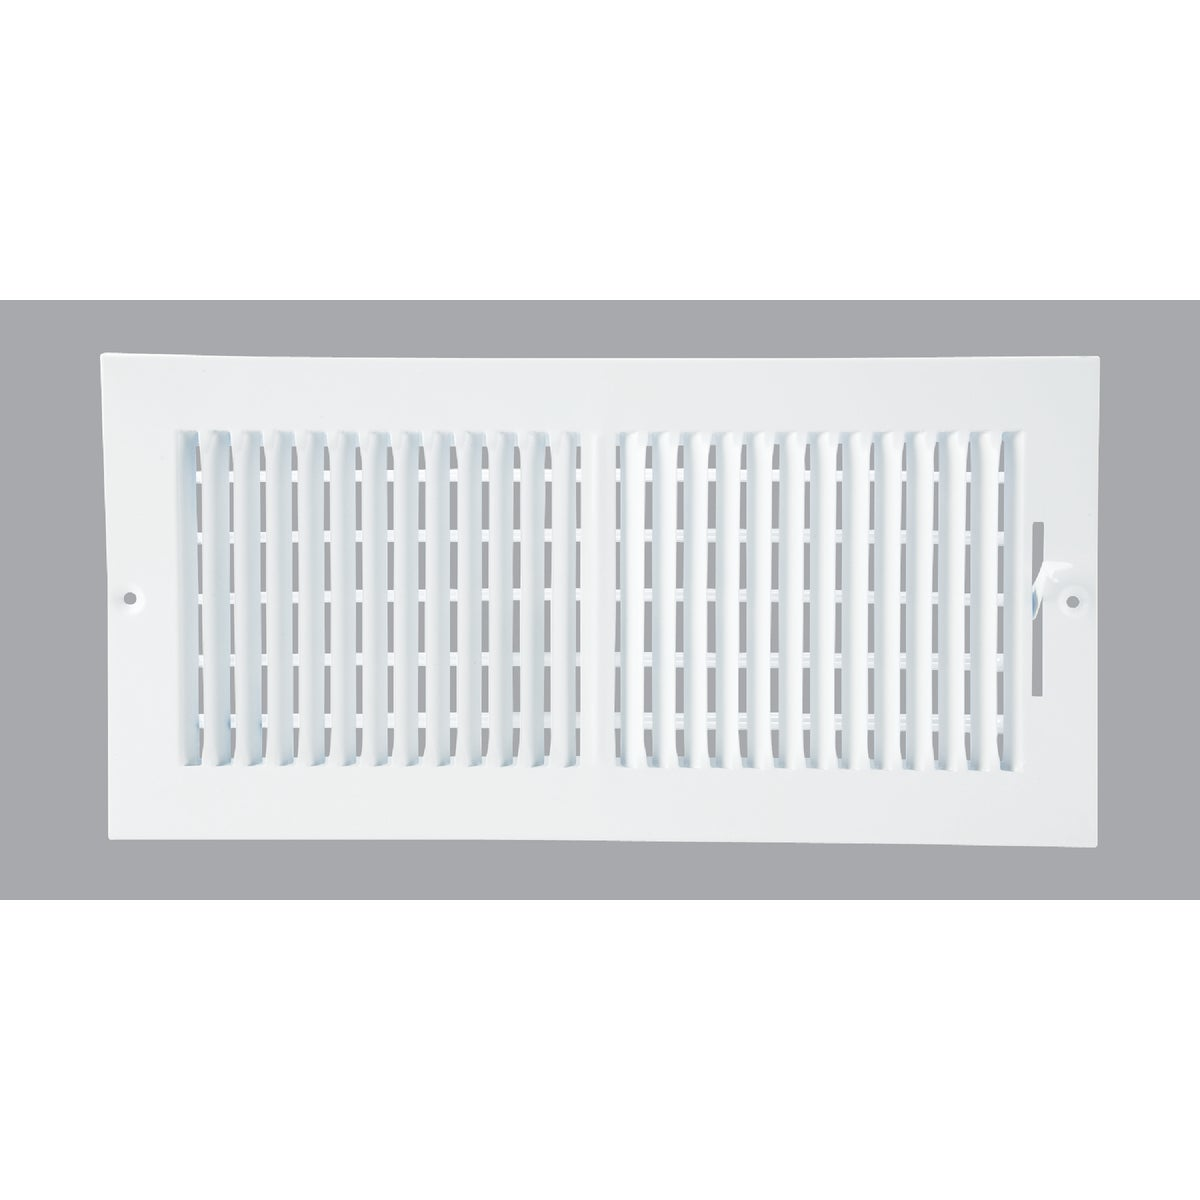 6X14 WHT WALL REGISTER